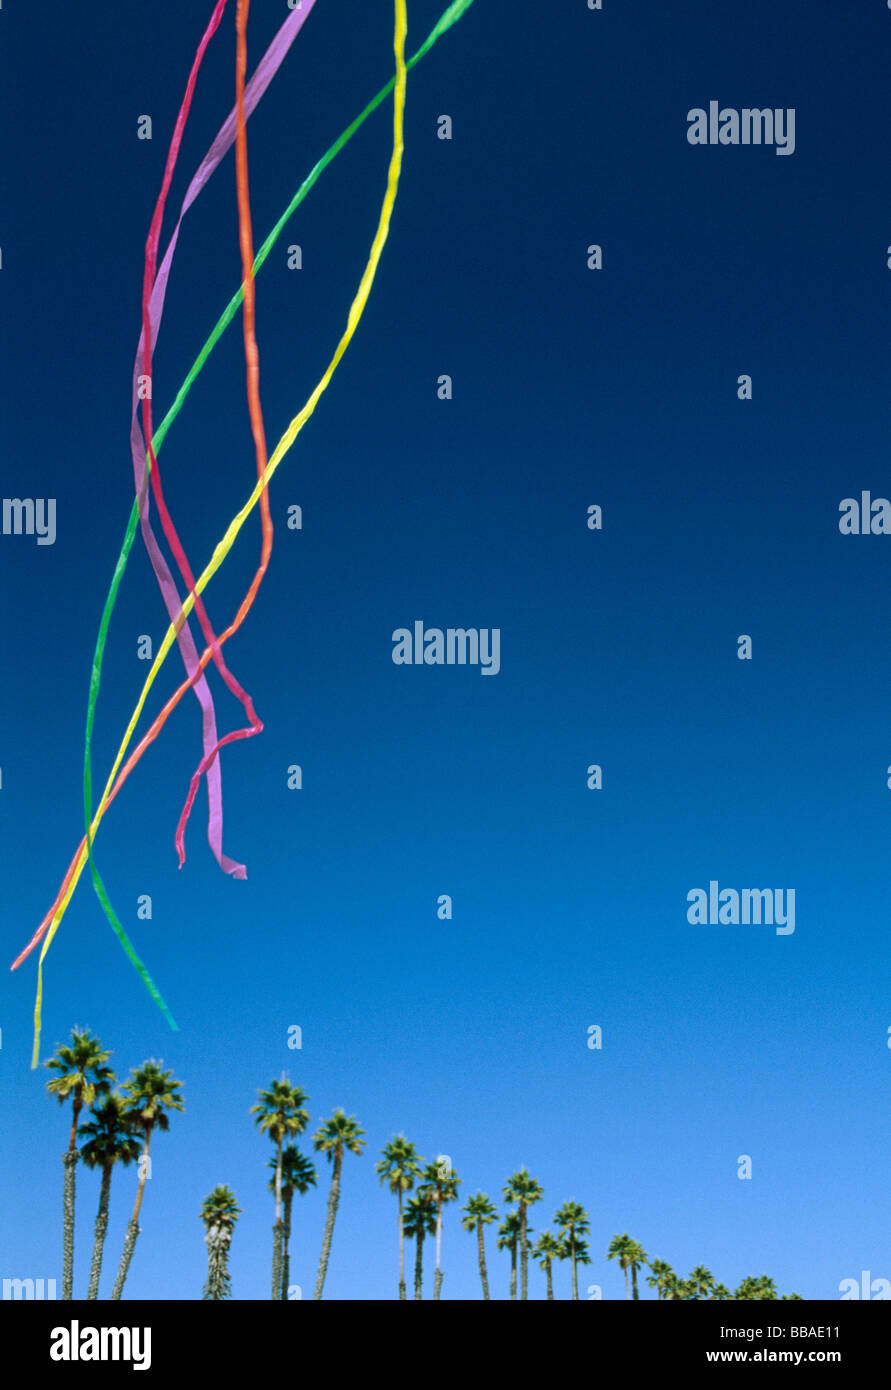 Colored streamers floating in the sky above palm trees - Stock Image